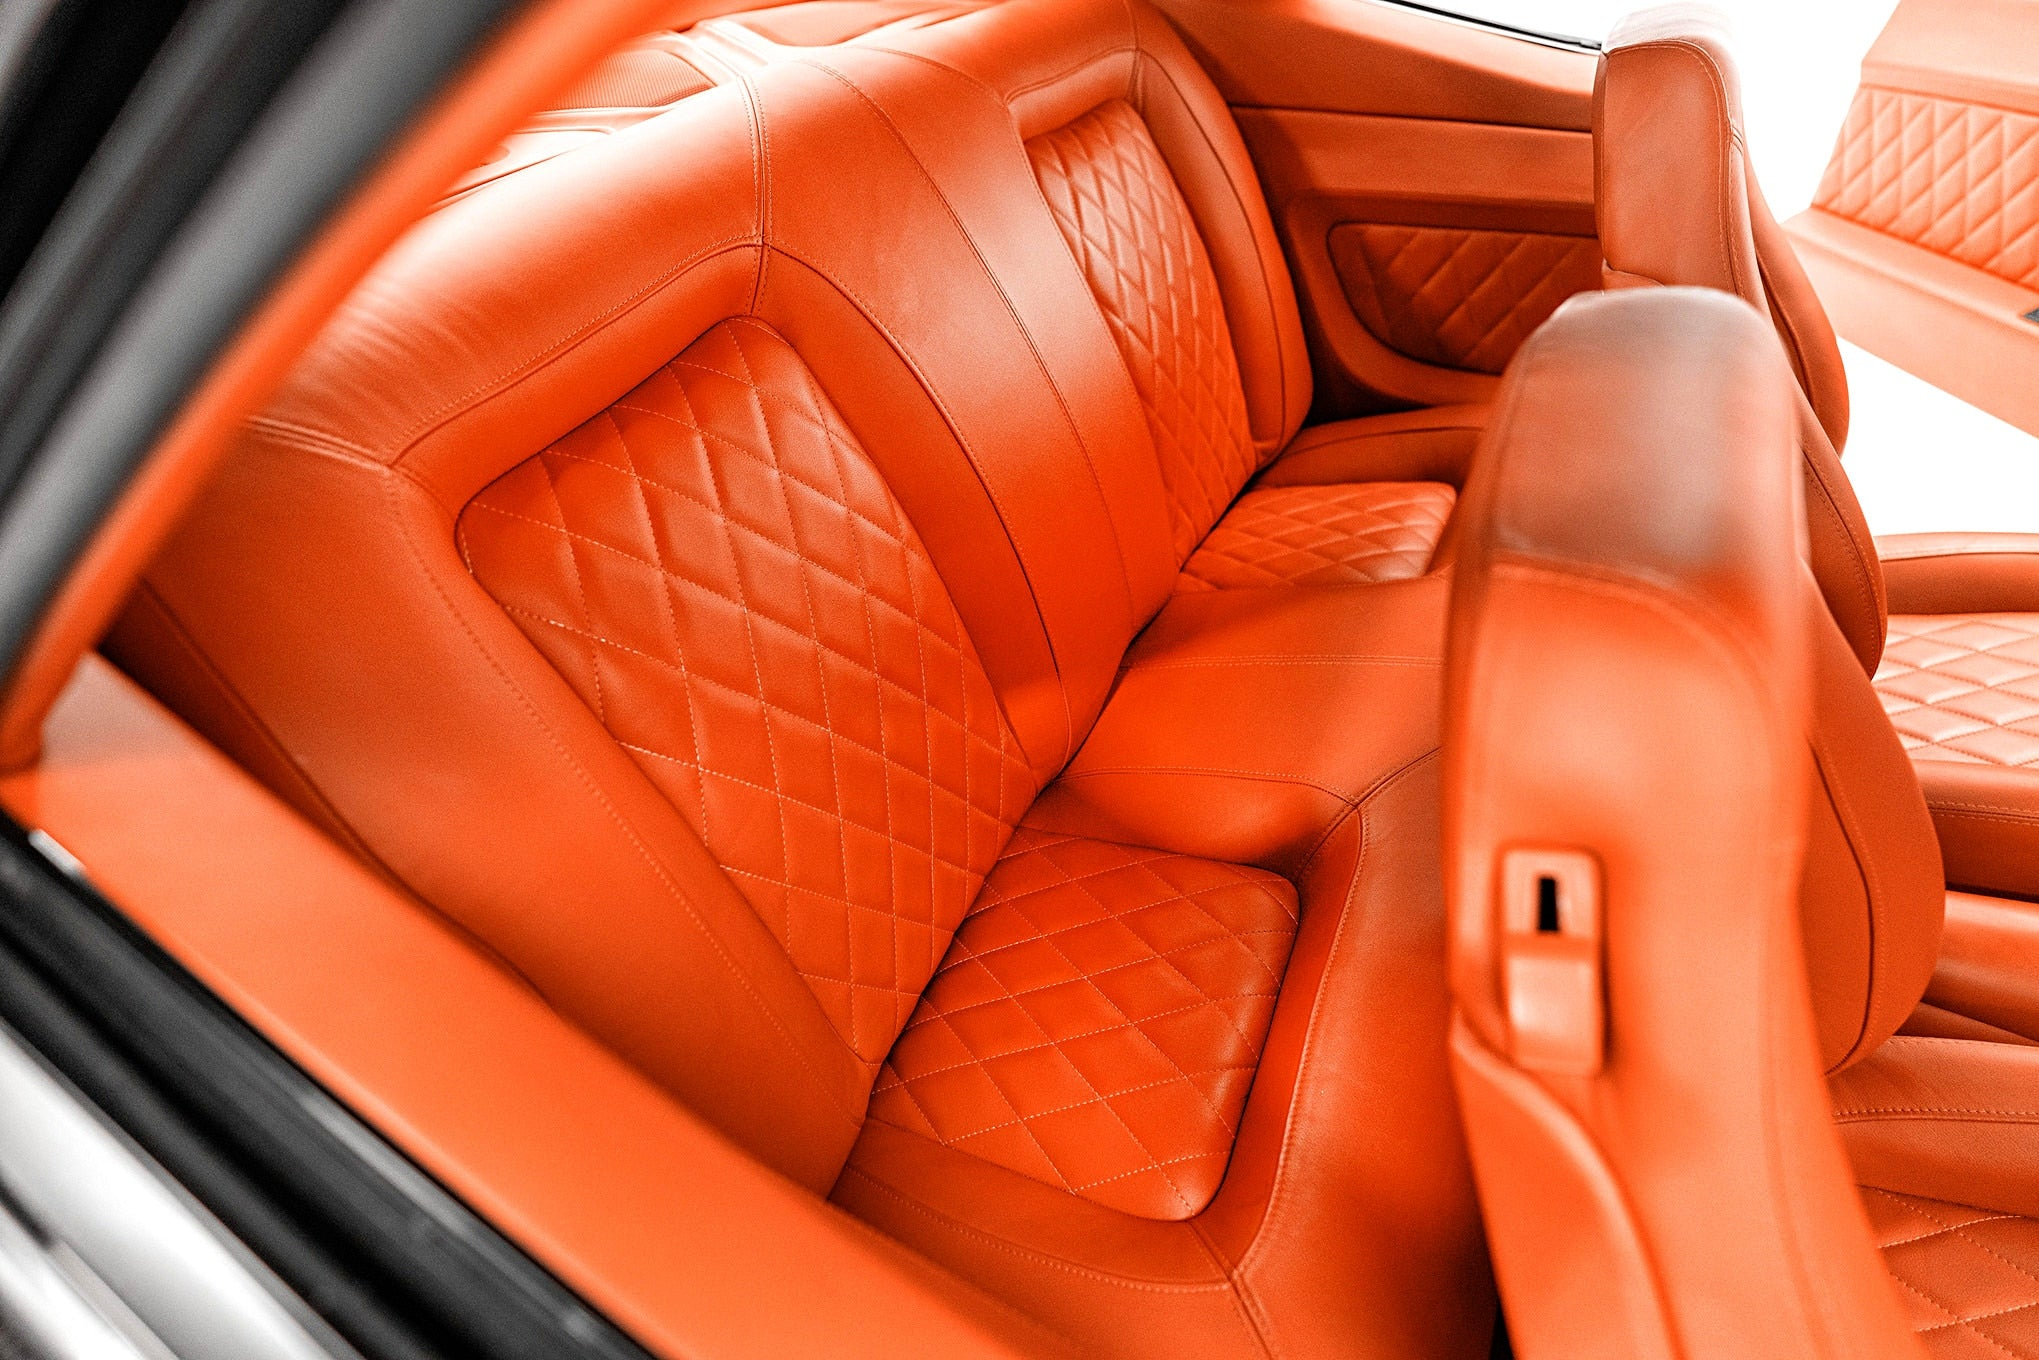 Classic Car Studio Relicate Orange Leather 1969 Camaro interior Back Seat